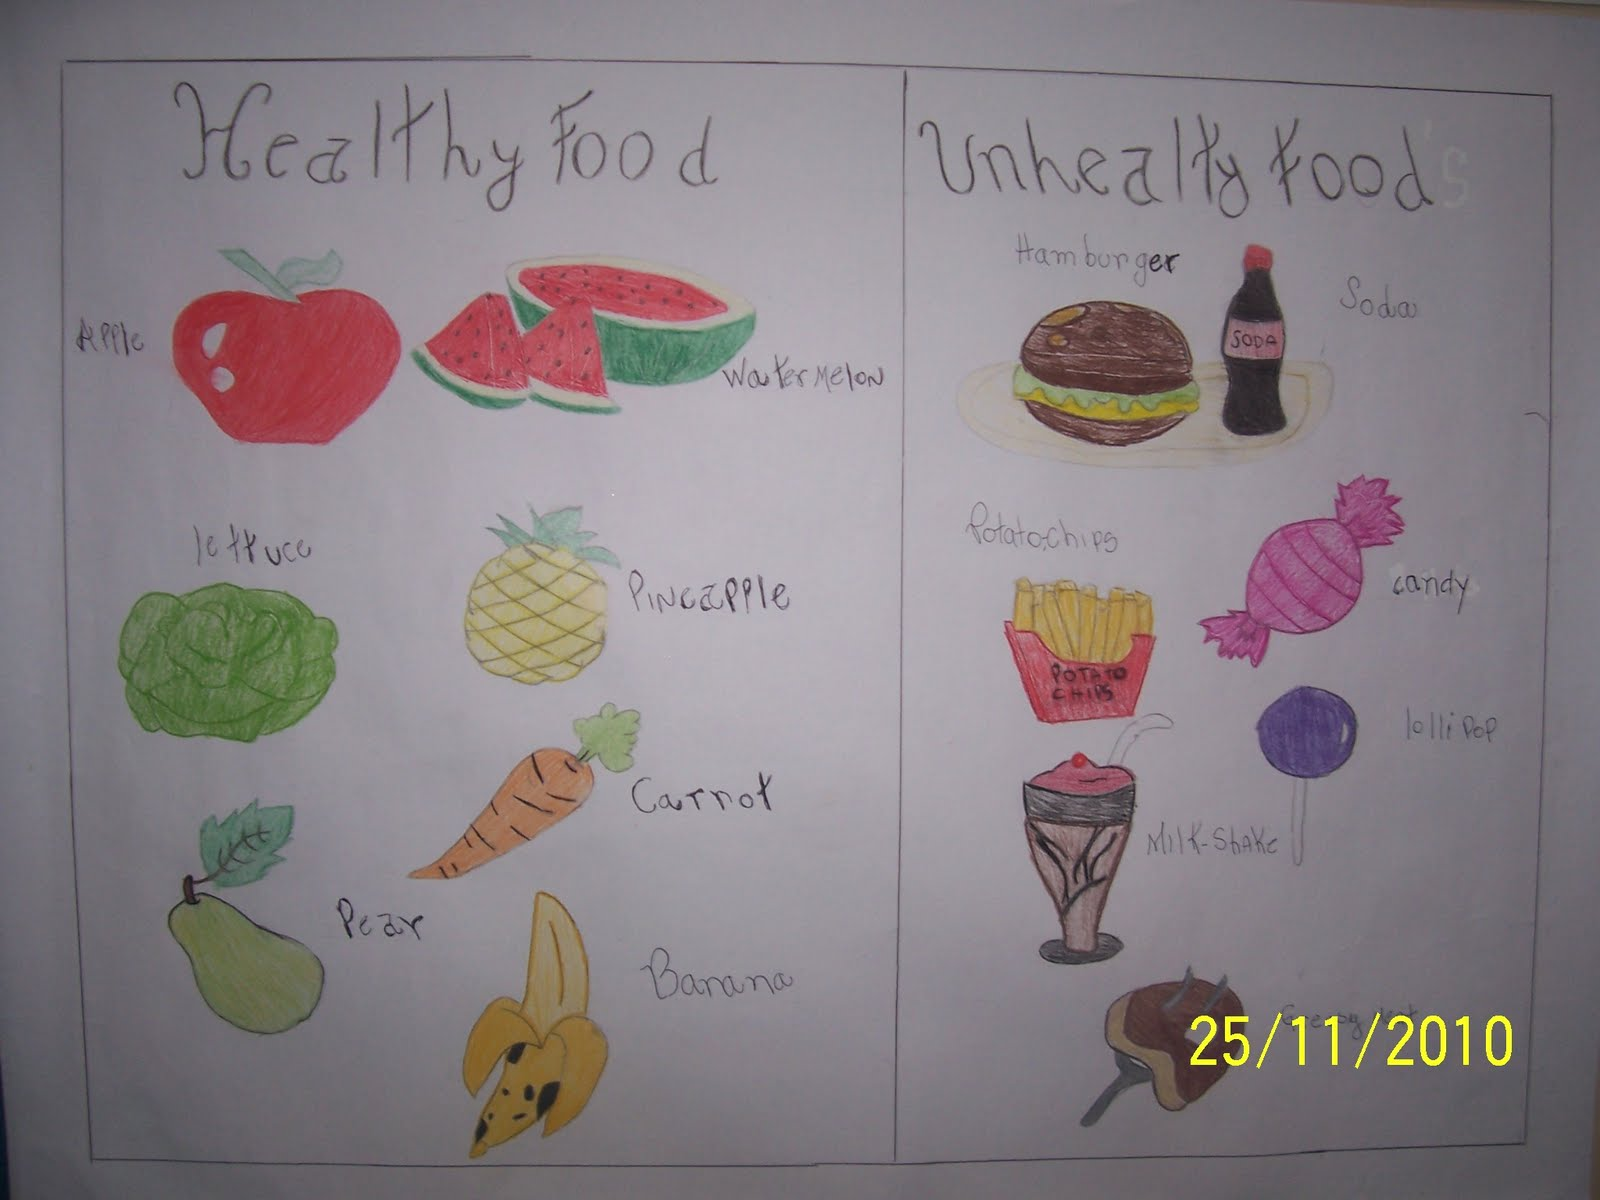 Isaac English Healthy Food X Junk Food